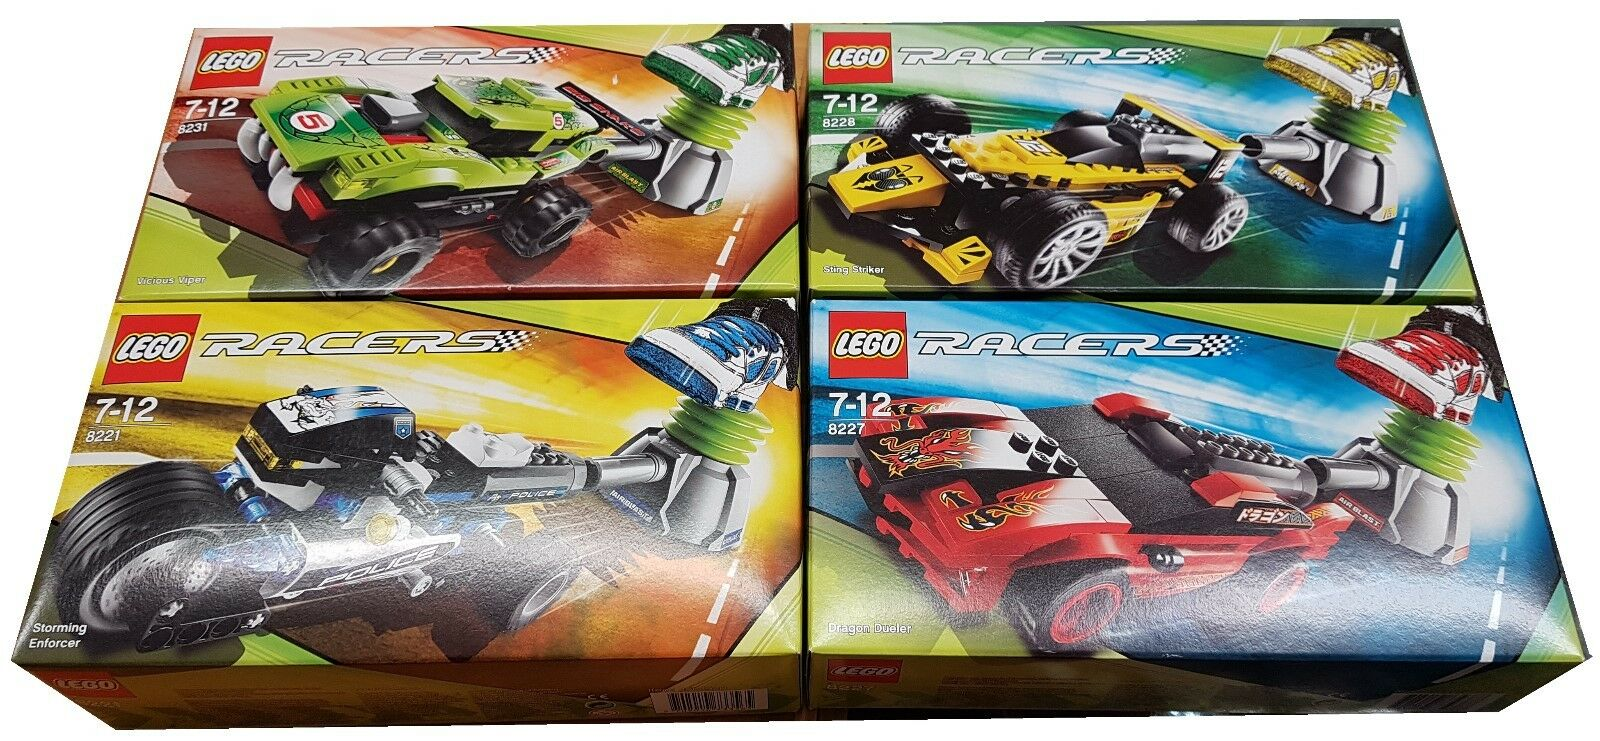 Lego racers 8221, 8227, 8228 and 8231 joblot.